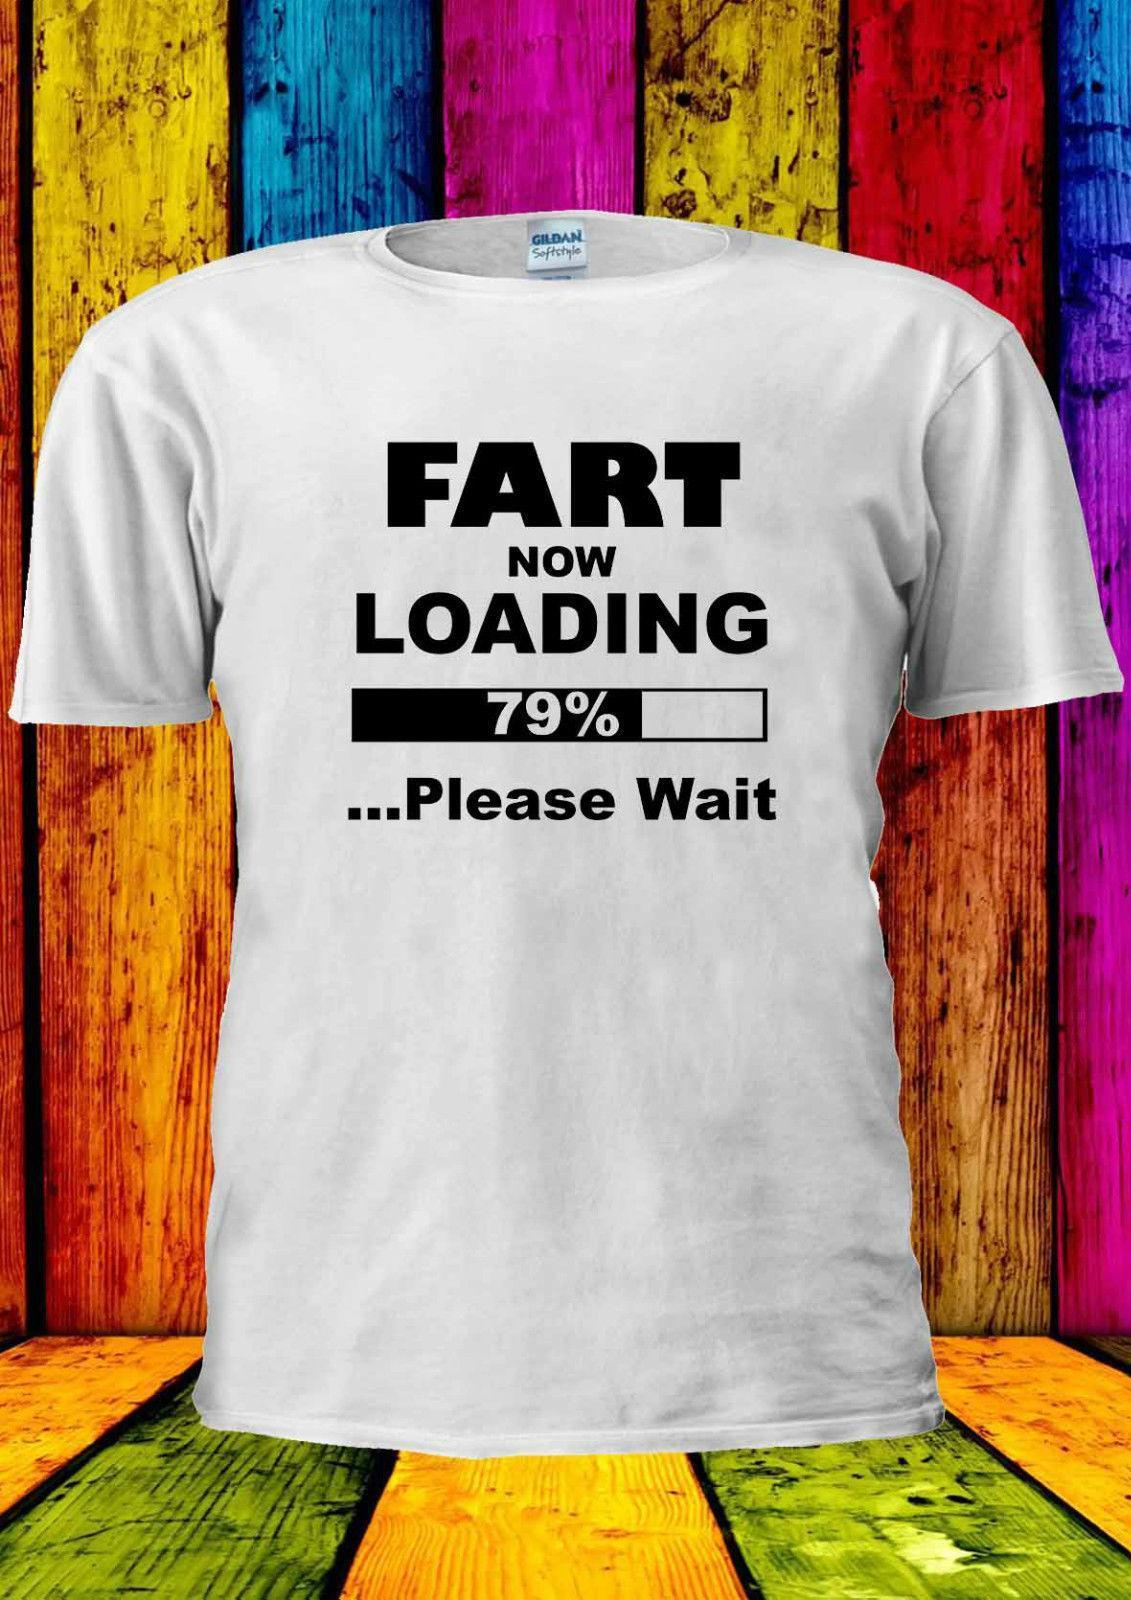 2783ddca5c62f3 Fart Now Loading 79% Please Wait T Shirt Vest Tank Top Men Women Unisex  1828 Really Funny Shirts Clothes T Shirt From Amesion75